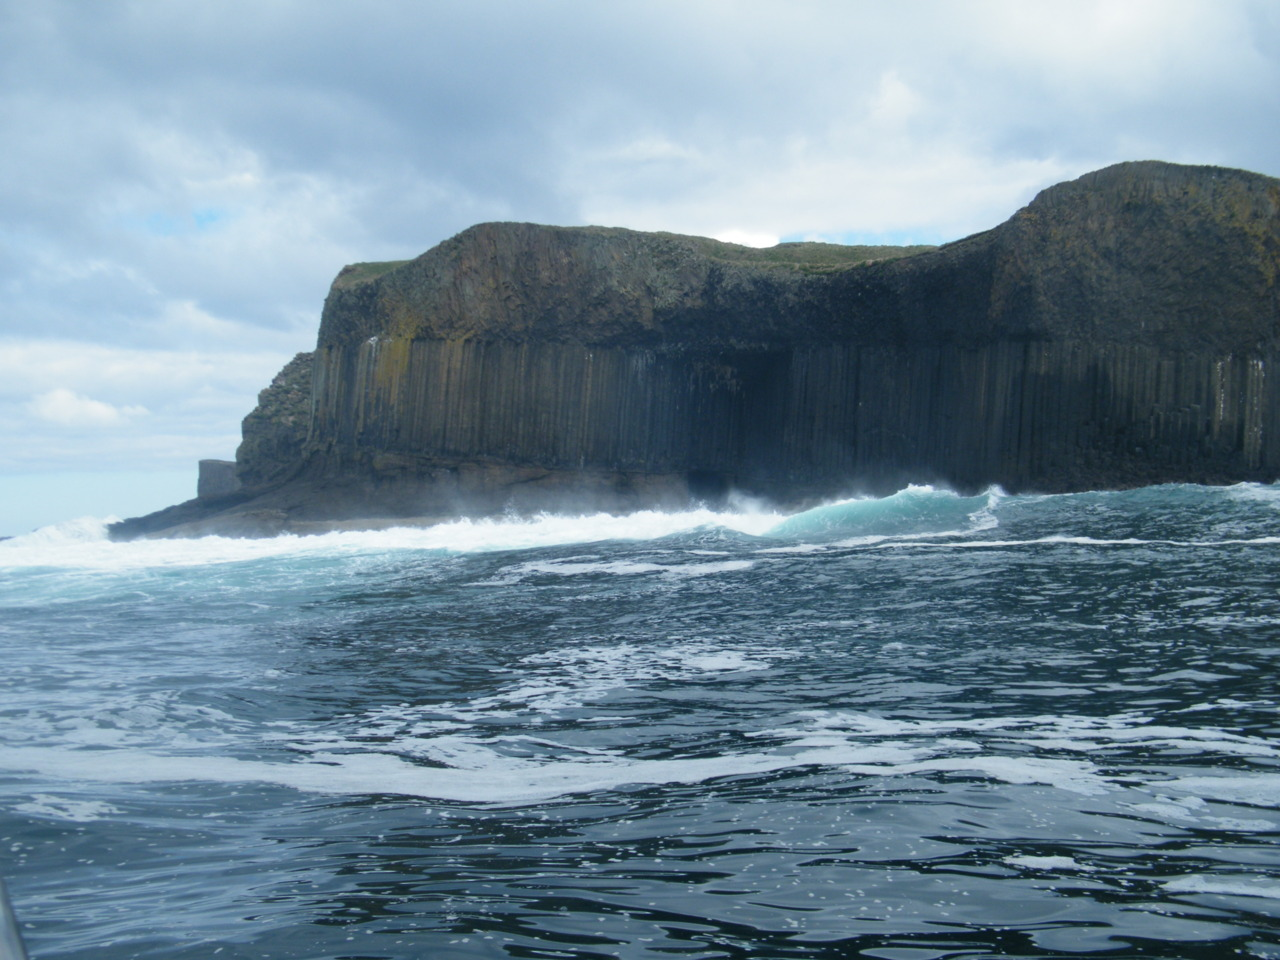 Swell breaking onto Staffa